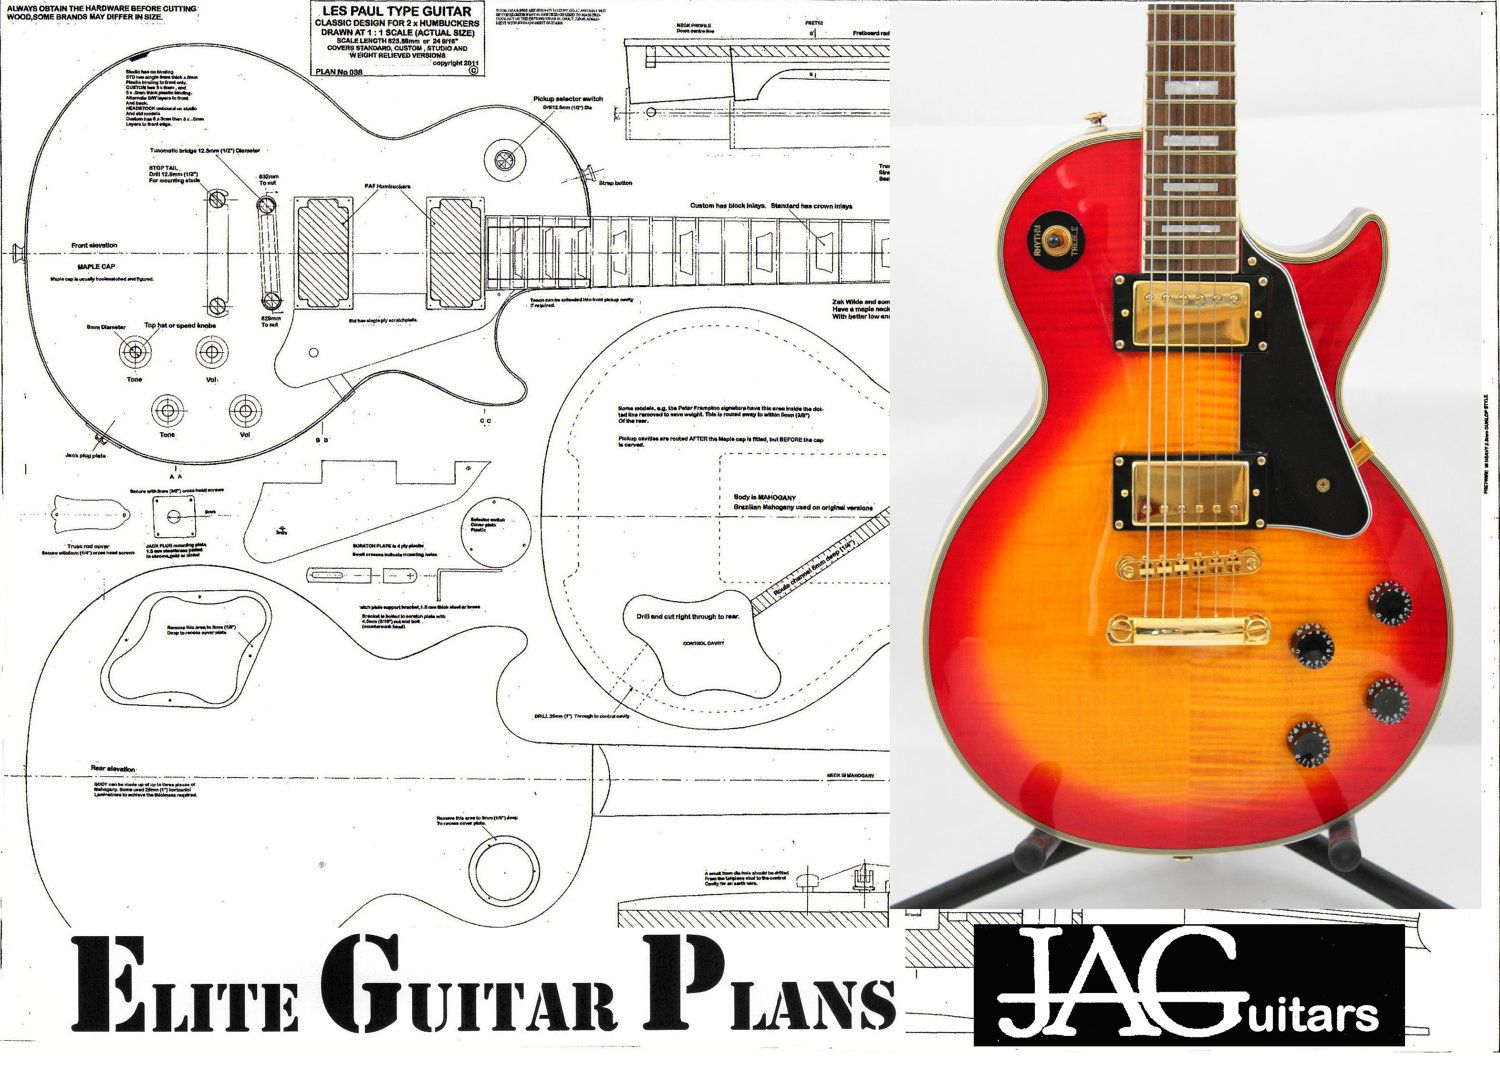 Dovetail template printable guitar - Full Size Plan To Build A Les Paul Electric Guitar